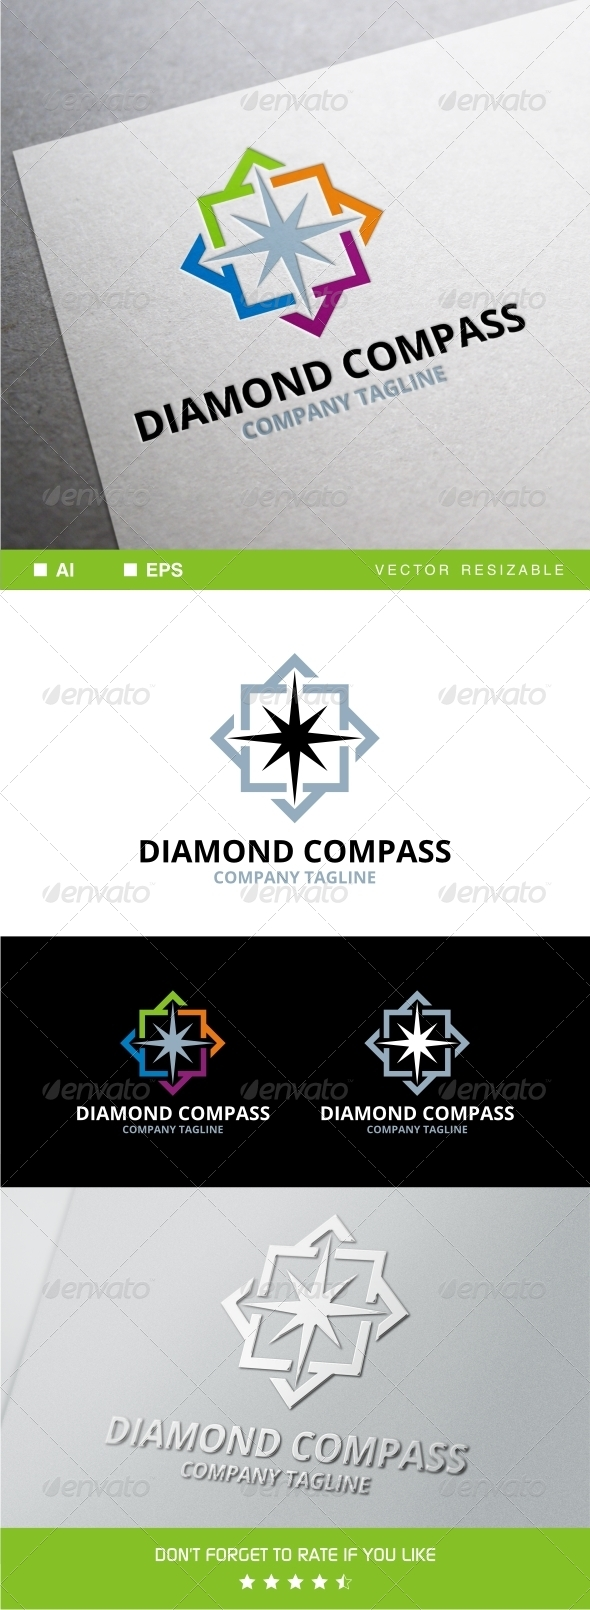 Diamond Compass Logo